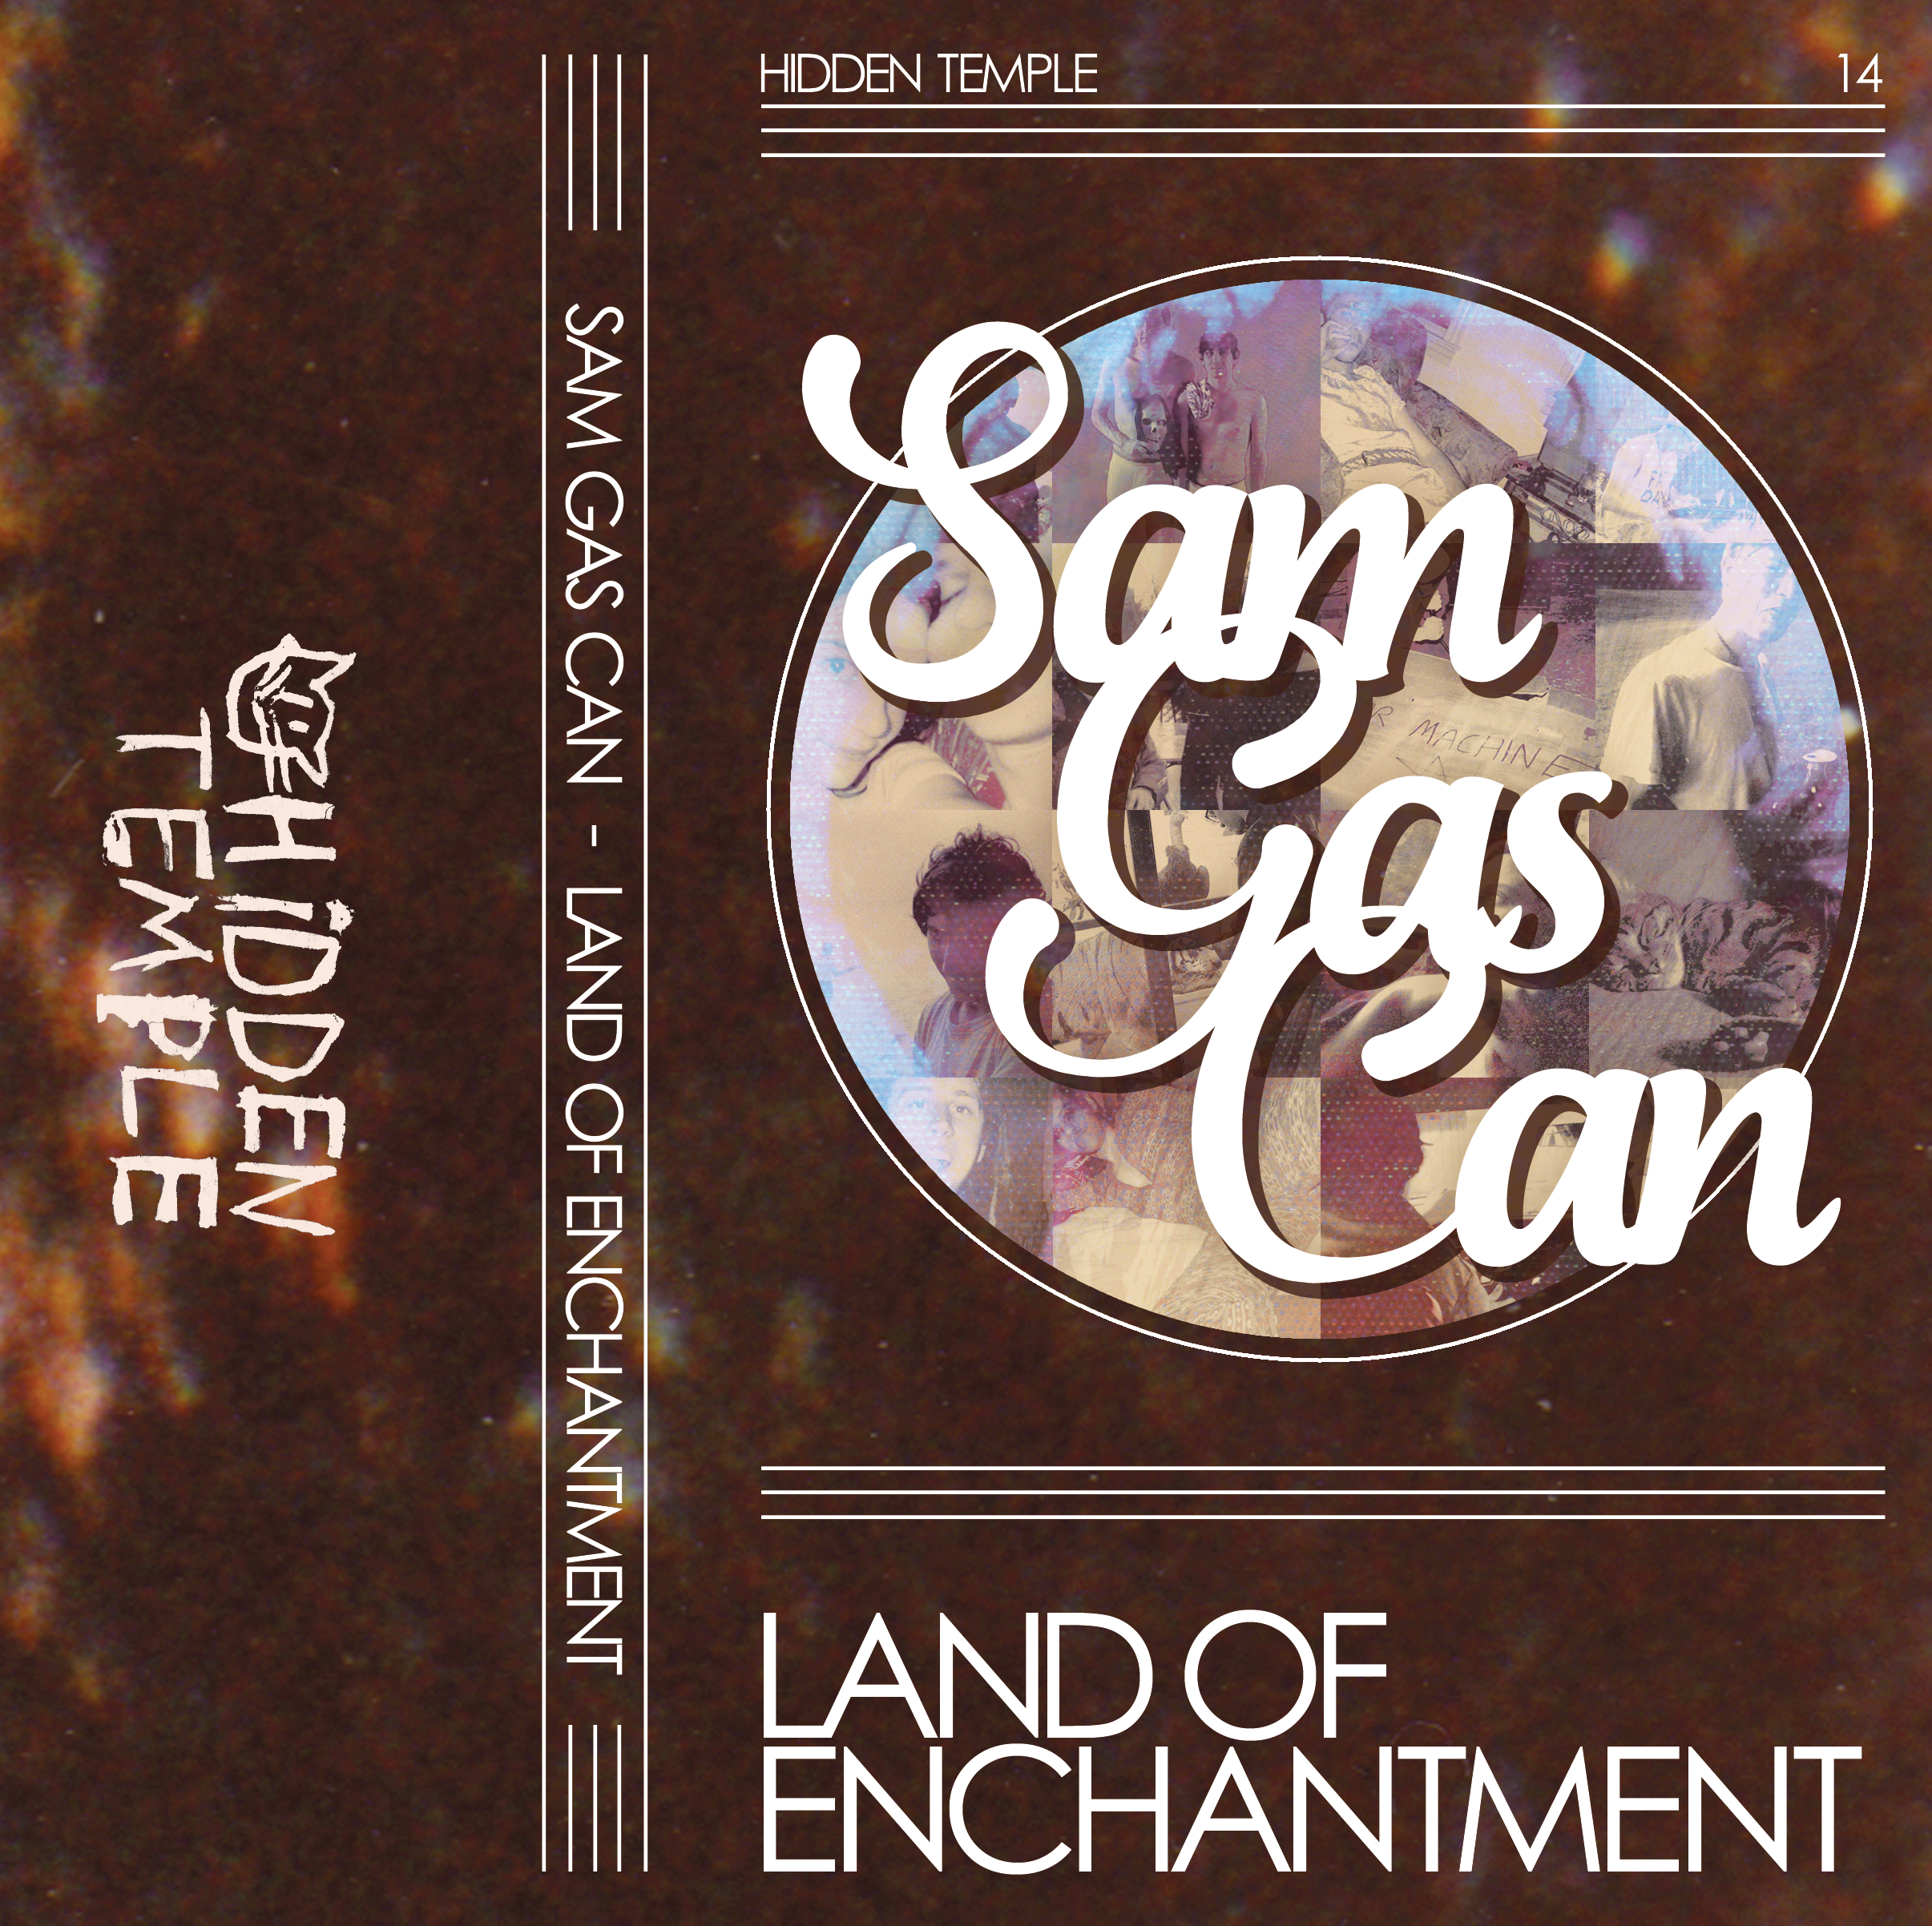 SAM GAS CAN 'Life of Enchantment'